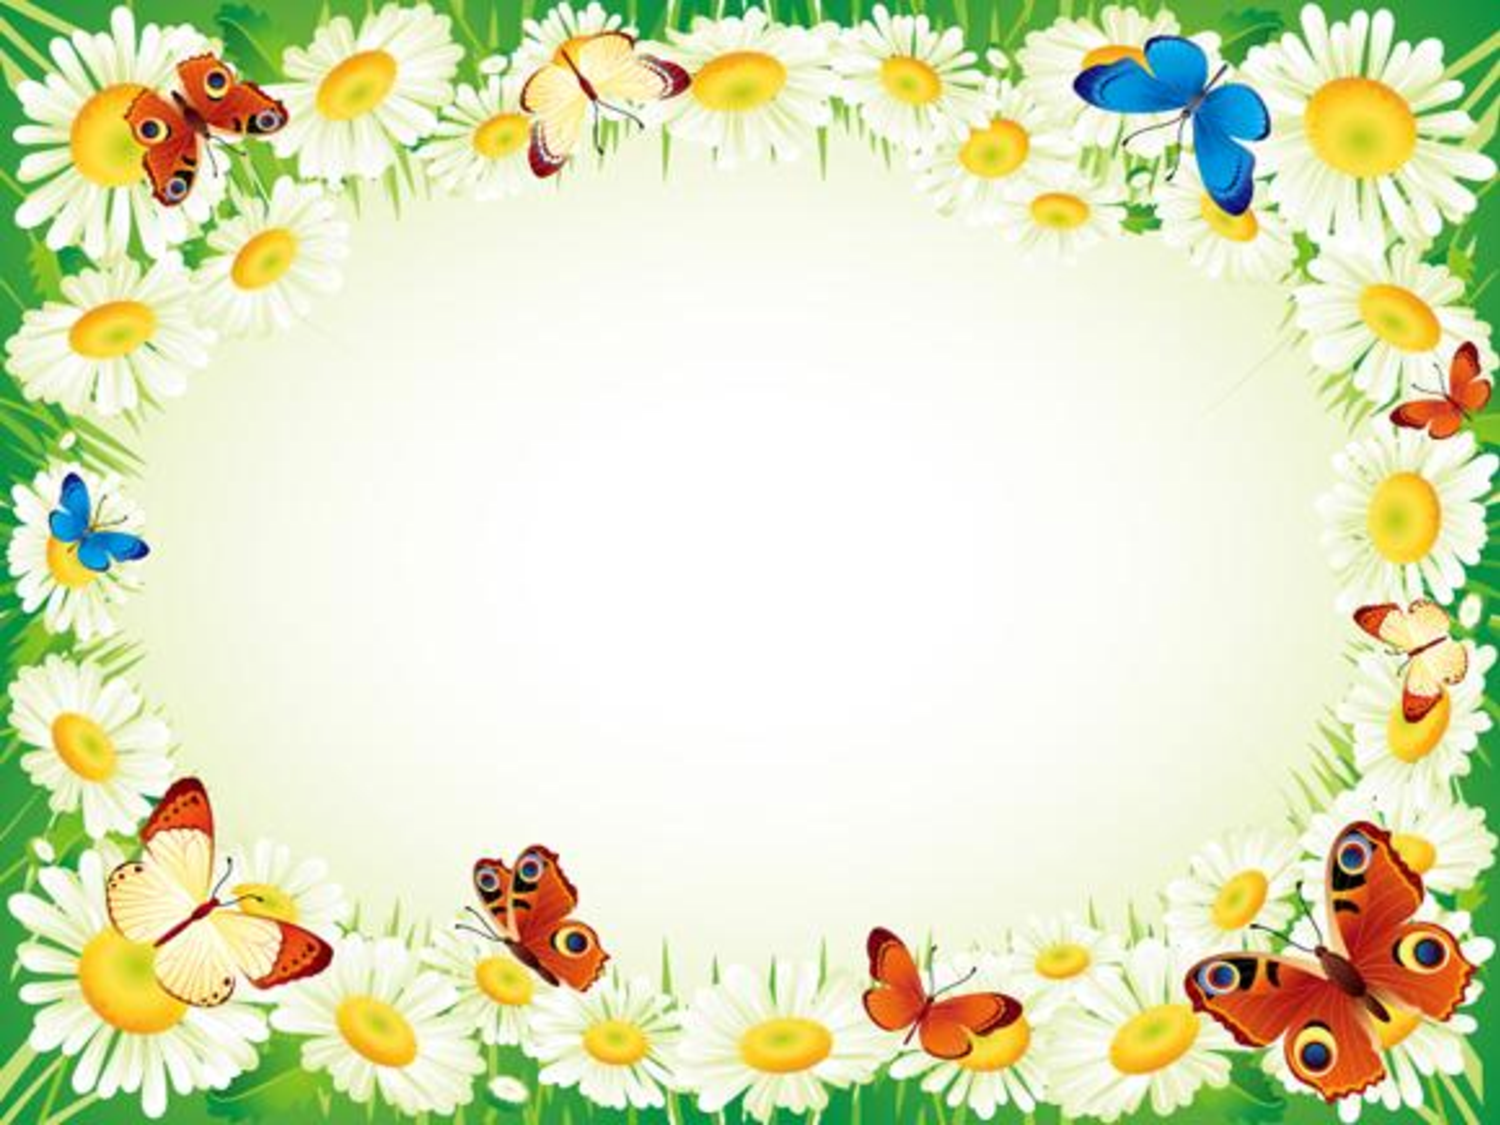 Border wallpapers and background. Borders clipart nature